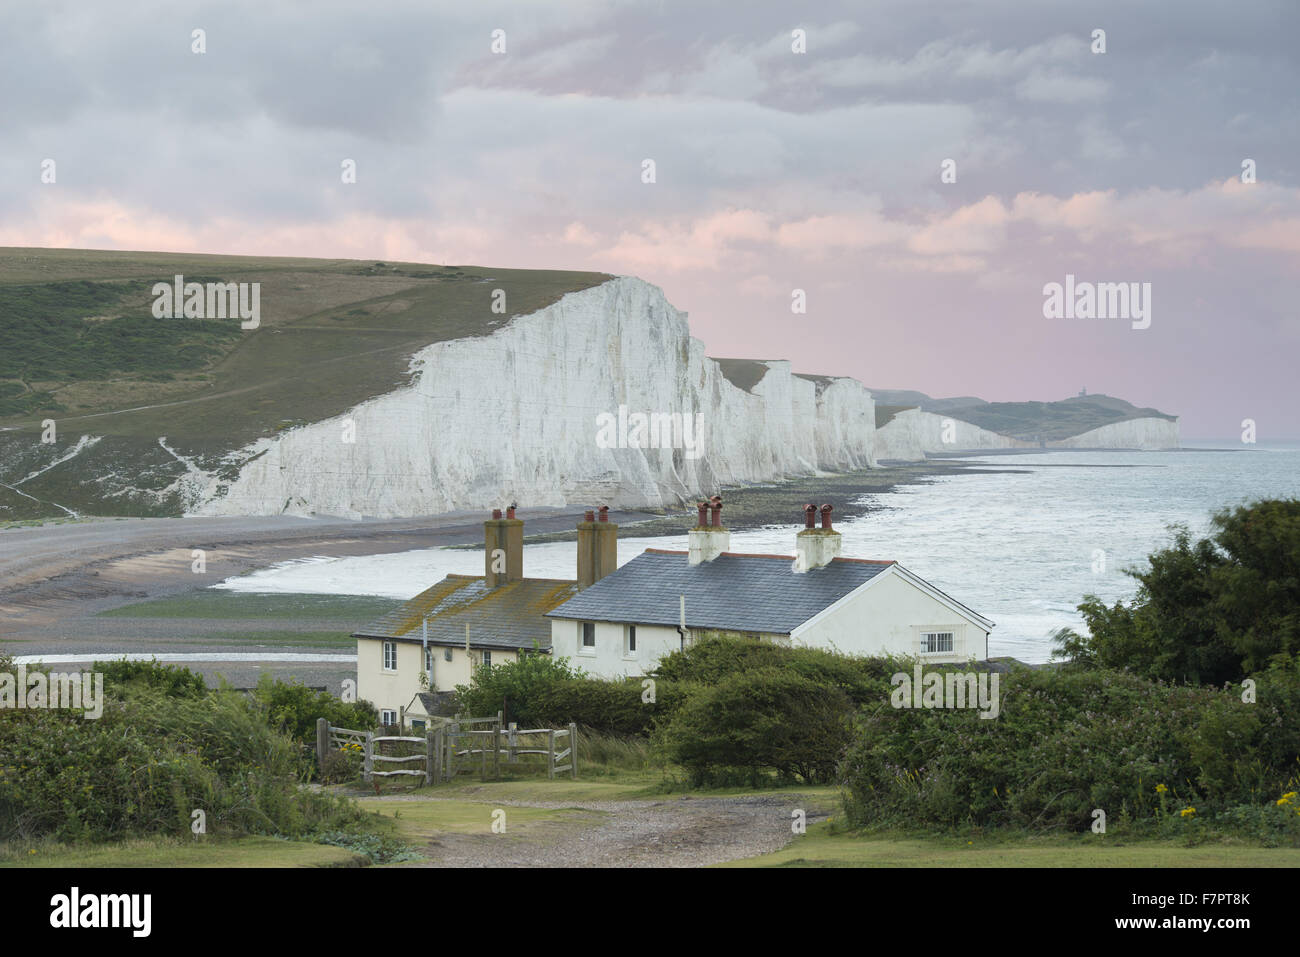 Stormy skies over the coastgard cottages at Cuckmere Valley, East Sussex, with the Seven Sisters seen beyond. - Stock Image